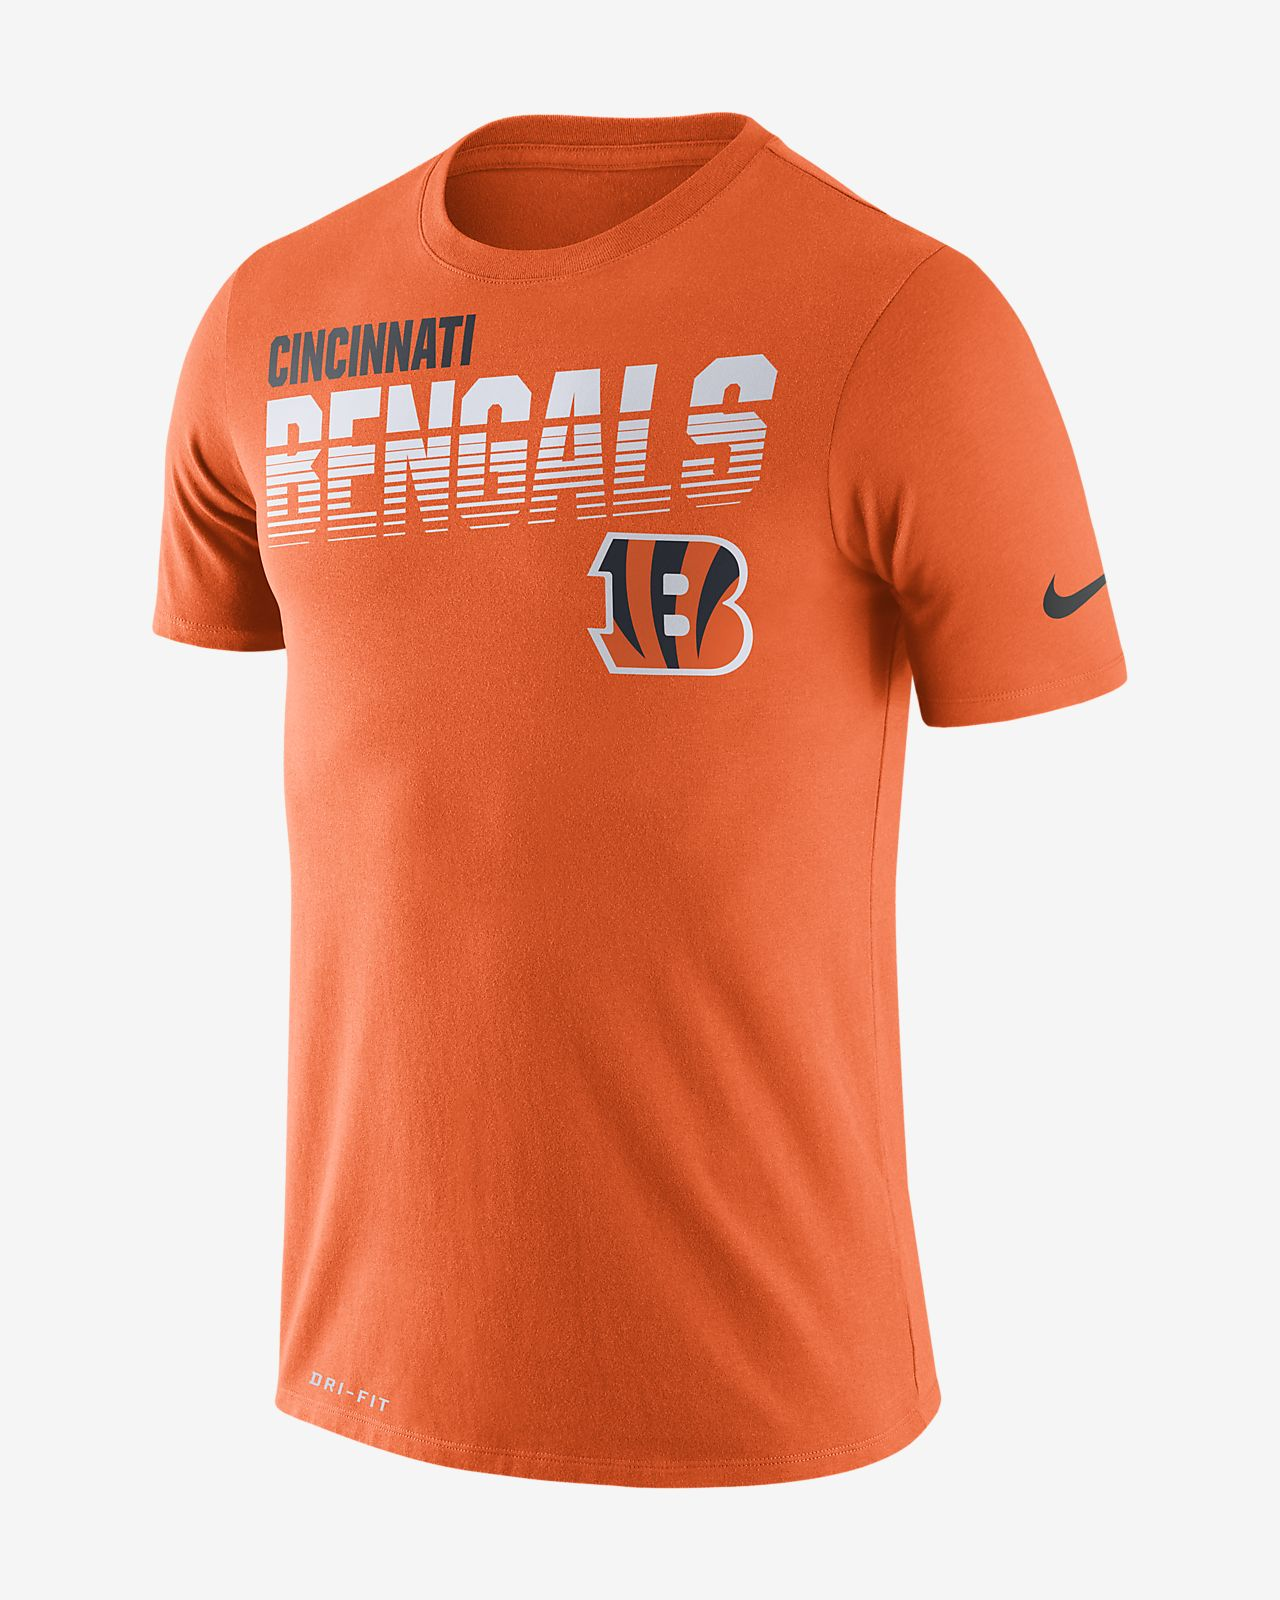 Nike Legend (NFL Bengals) Men's Short-Sleeve T-Shirt